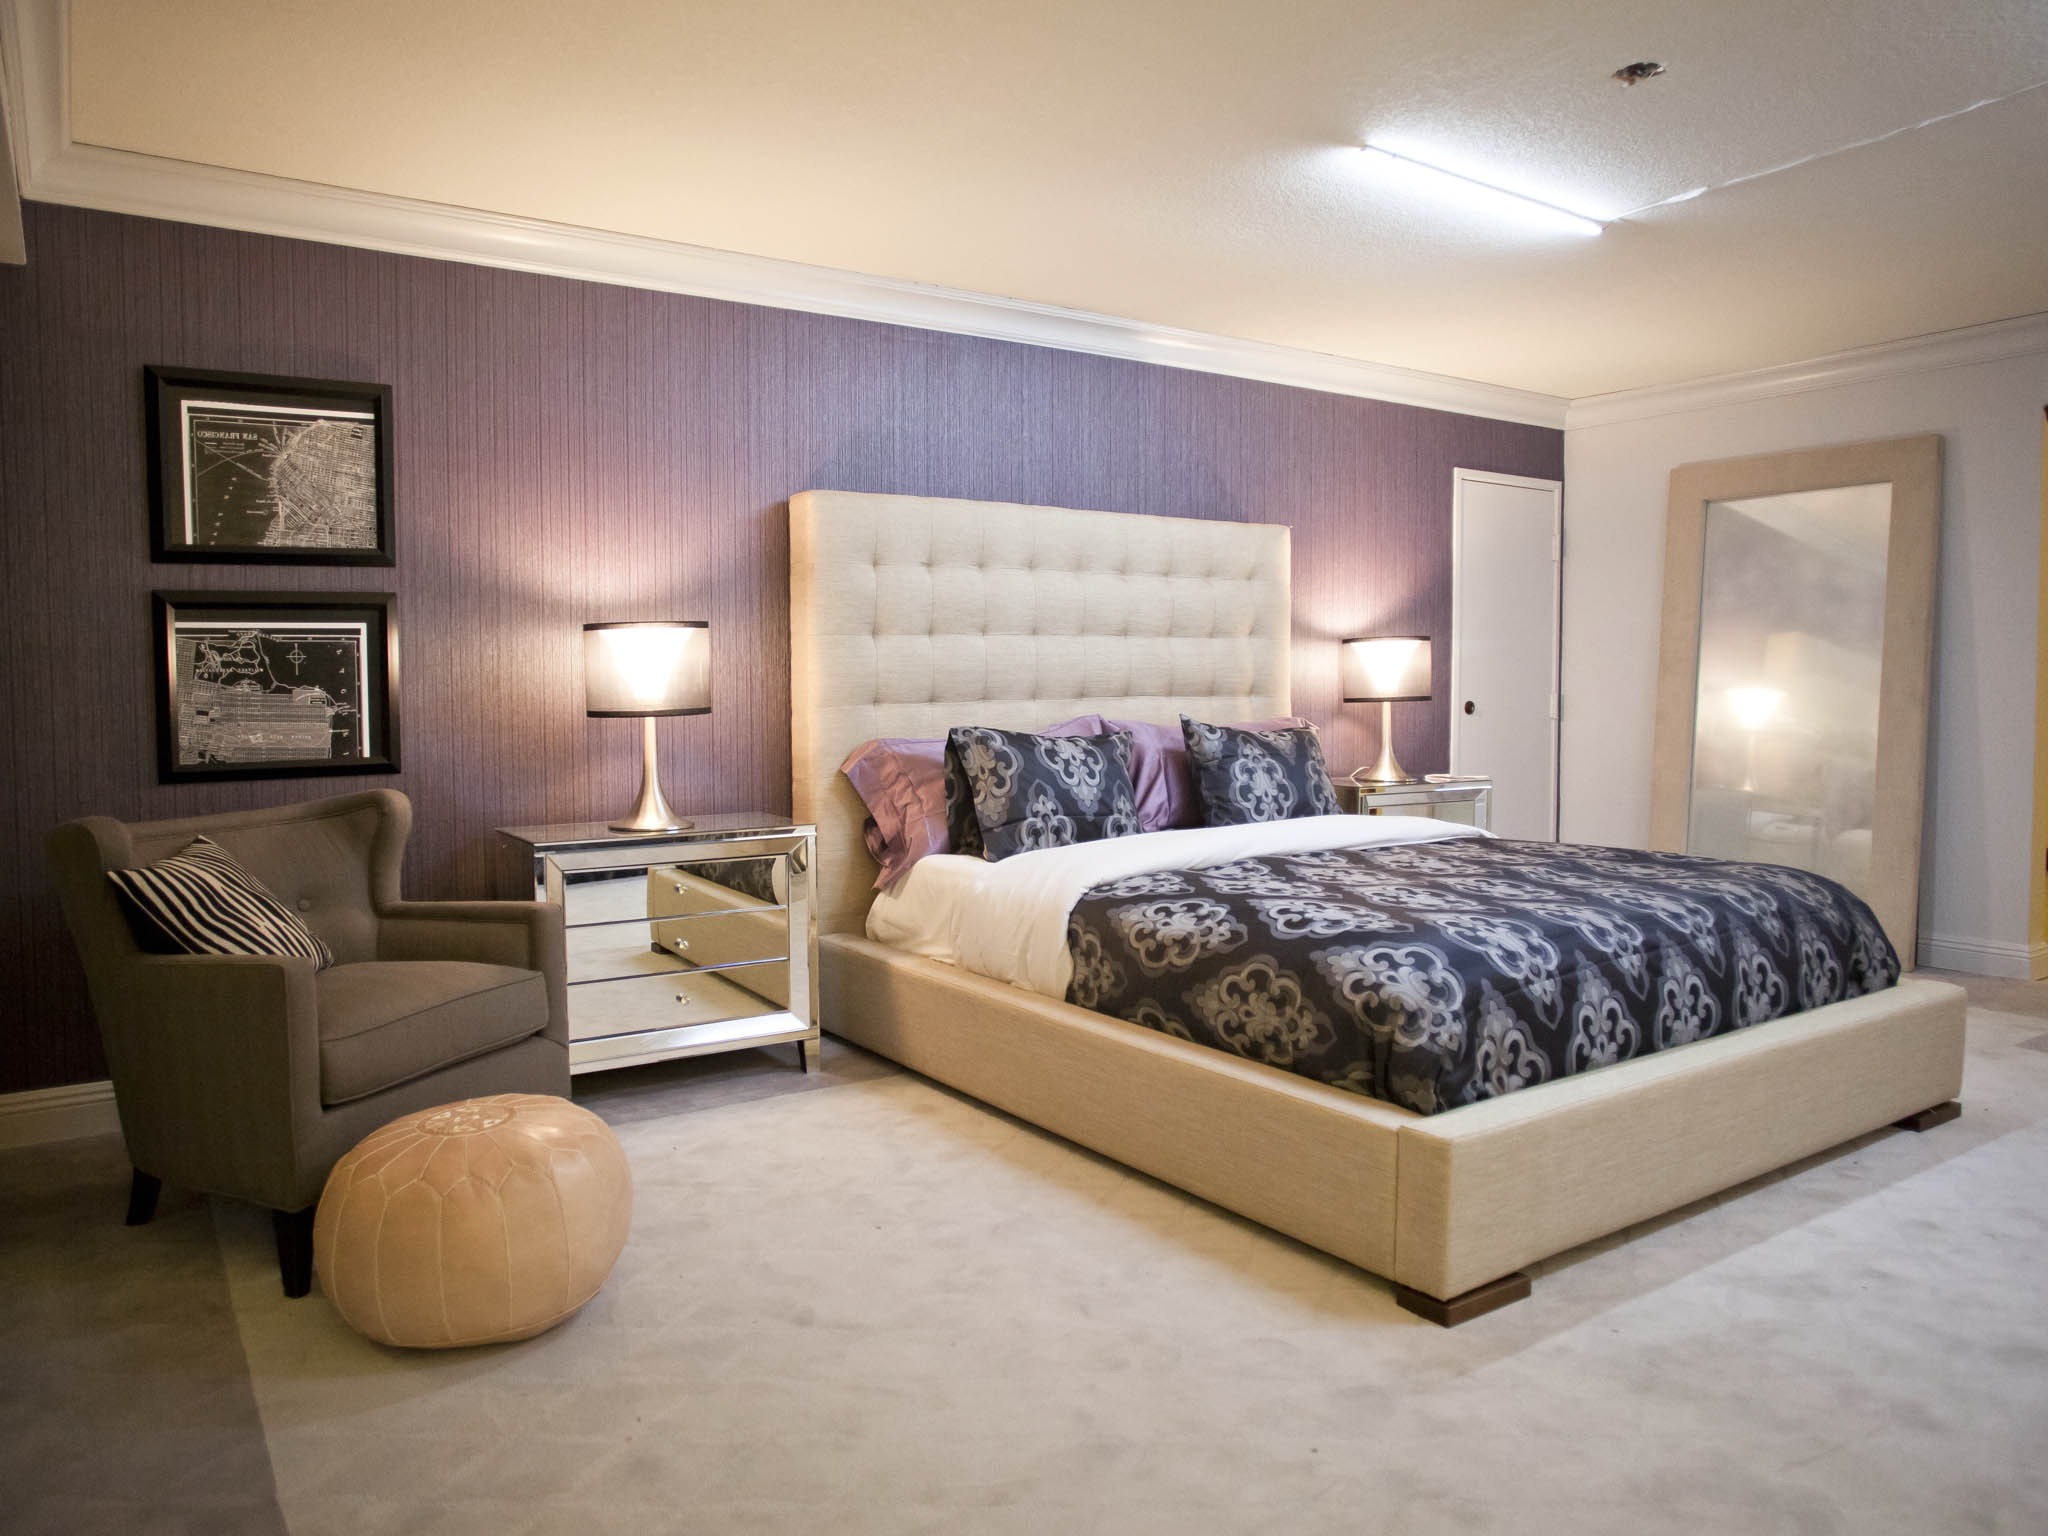 Easy Bedroom Apartment Decoration 16990  Bedroom Ideas